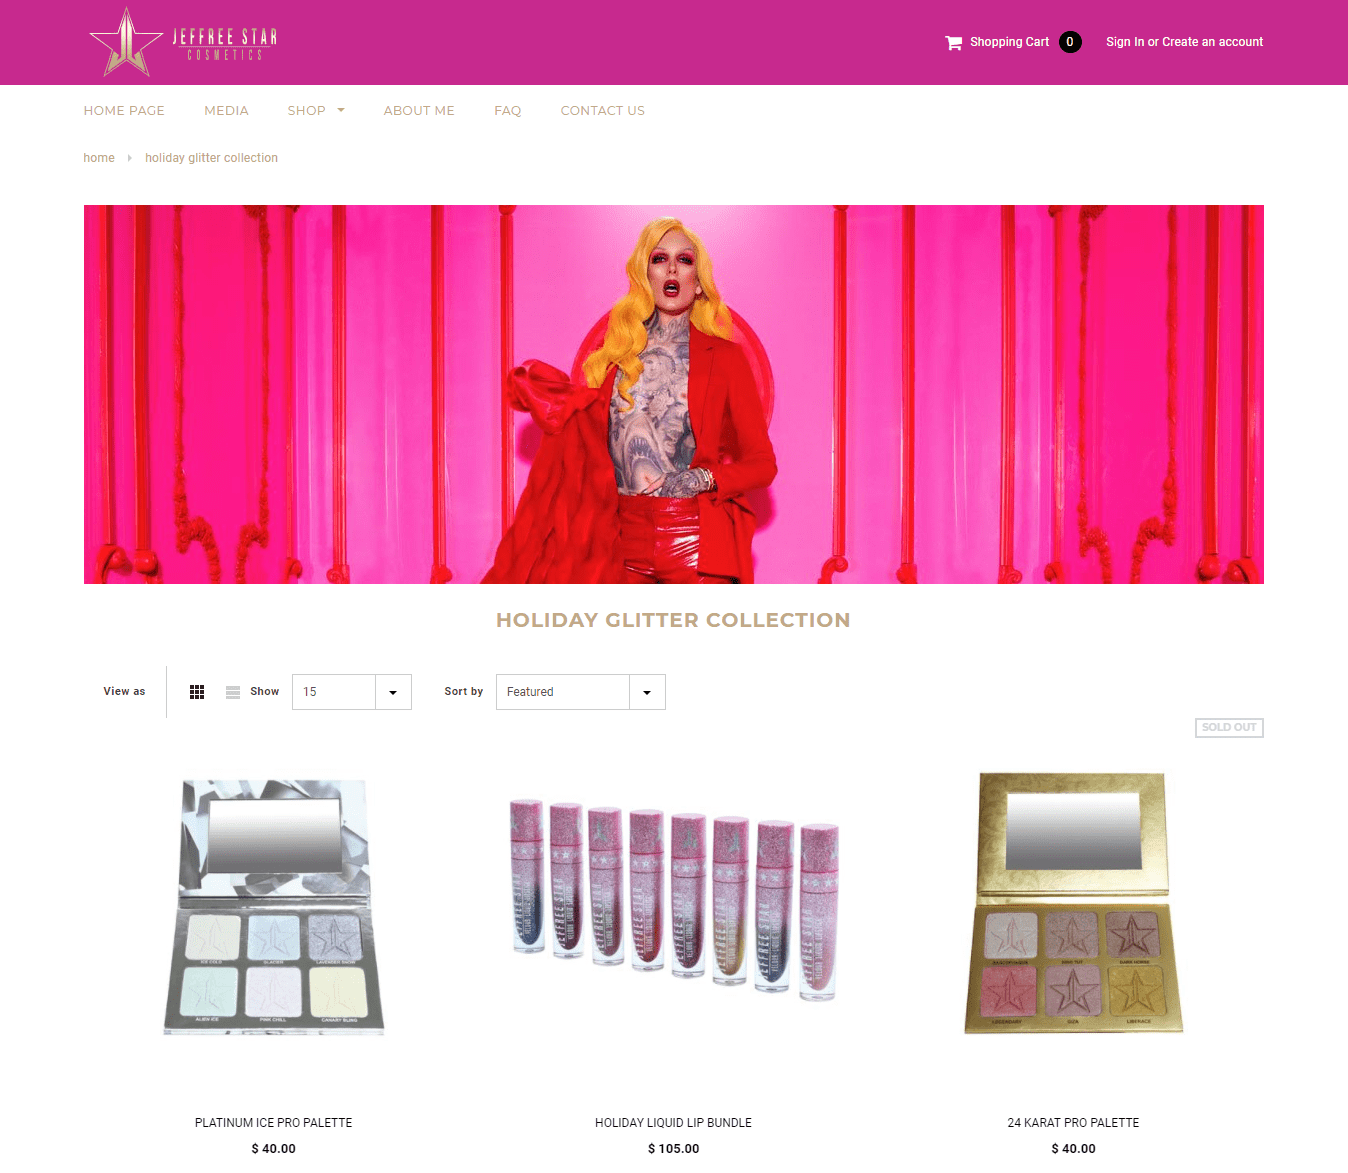 jeffree star youtuber singer make-up artist cosmetics ecommerce store shopify plus product range